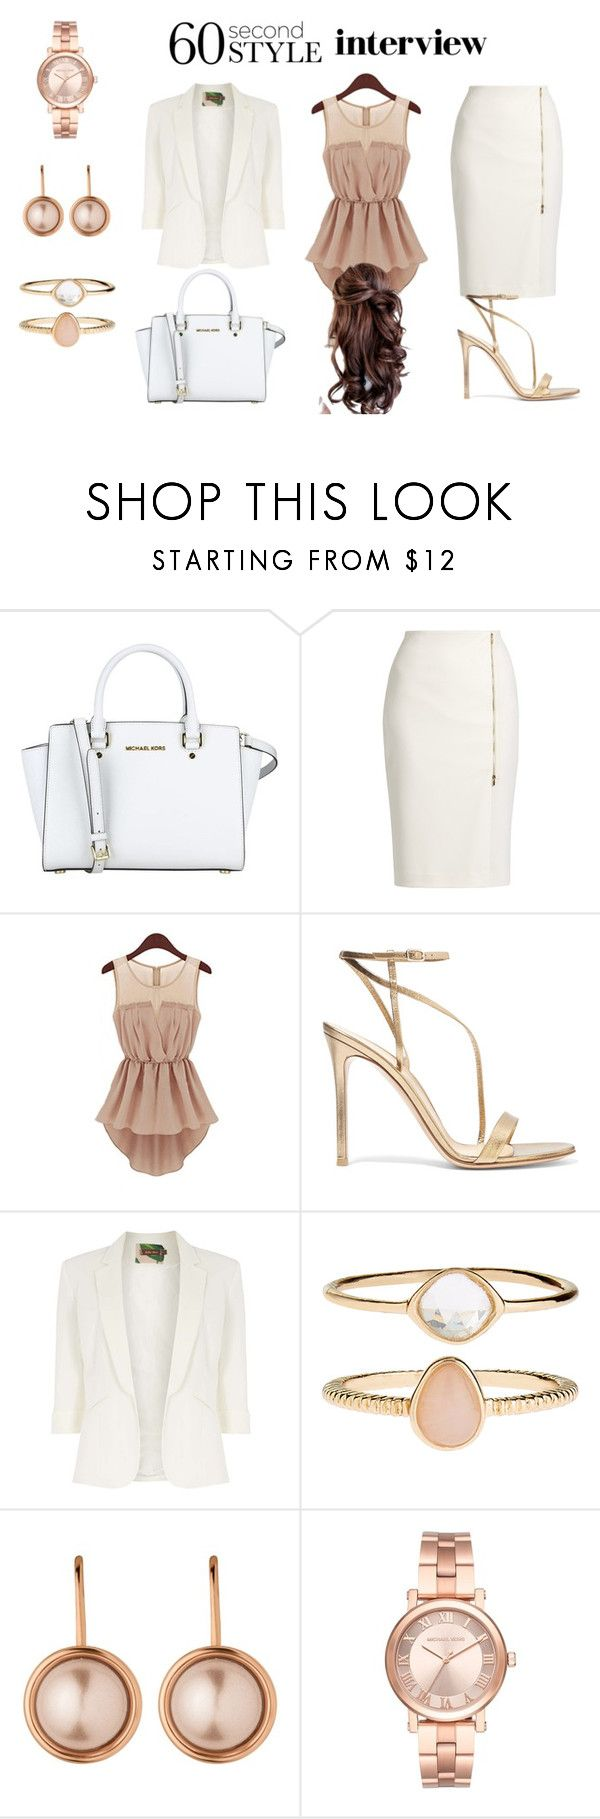 """Rose Gold"" by lydia-fabian ❤ liked on Polyvore featuring MICHAEL Michael Kors, MaxMara, Gianvito Rossi, Jolie Moi, Accessorize, Dyrberg/Kern, Michael Kors, jobinterview and 60secondstyle"